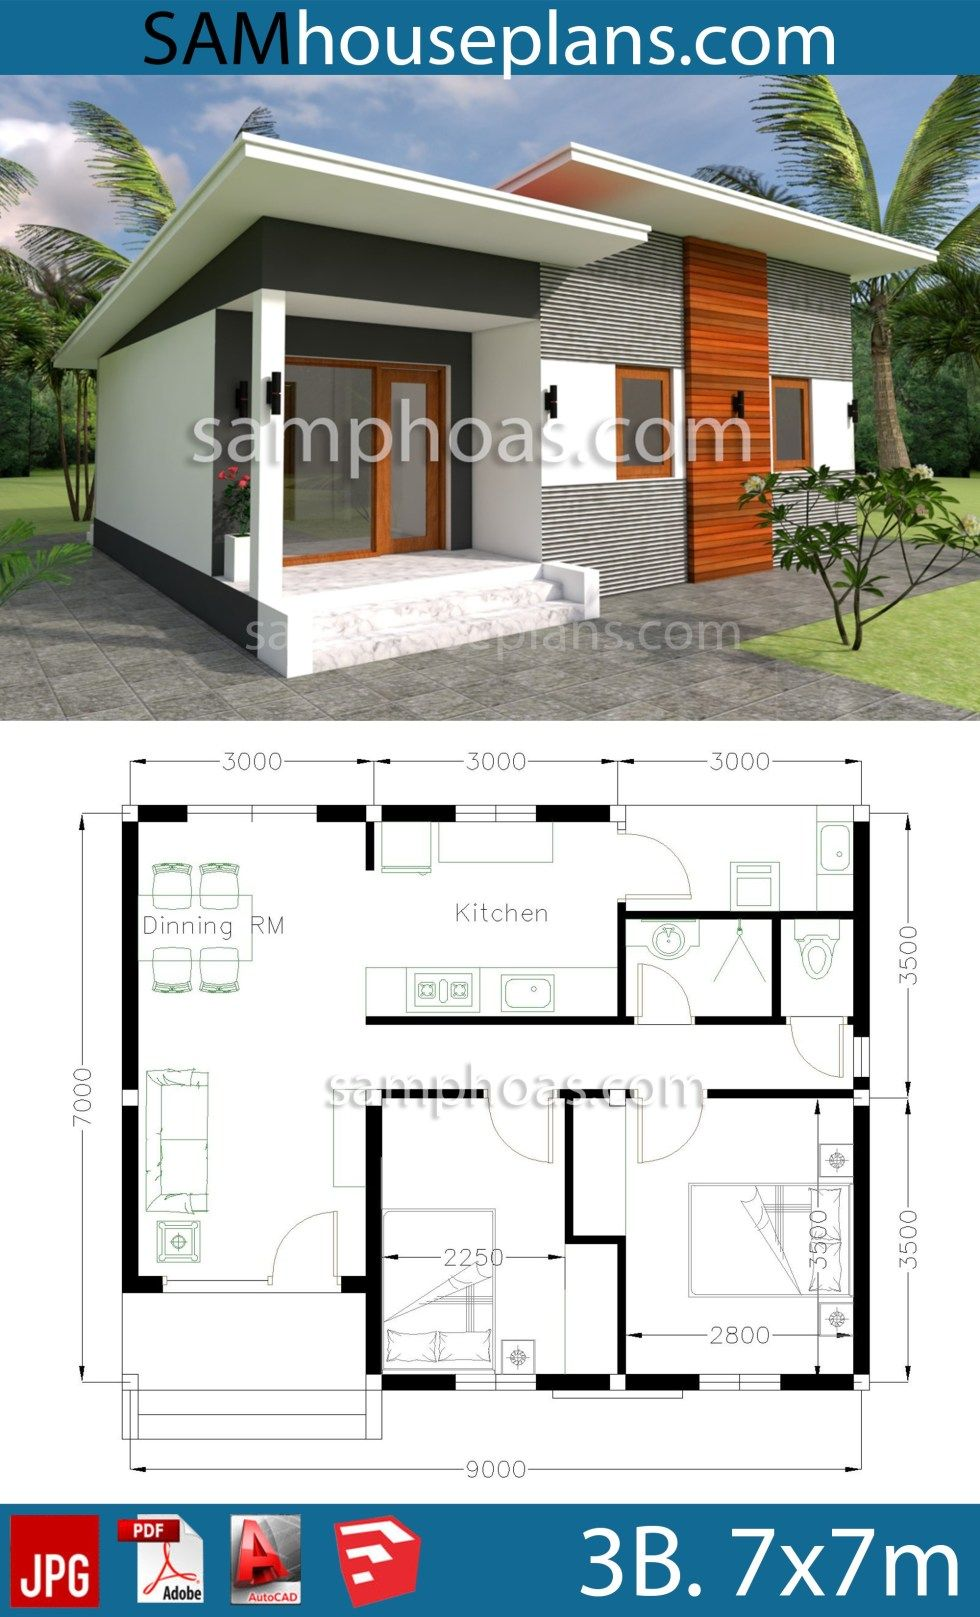 House Plans 9x7m With 2 Bedrooms My House Plans House Layout